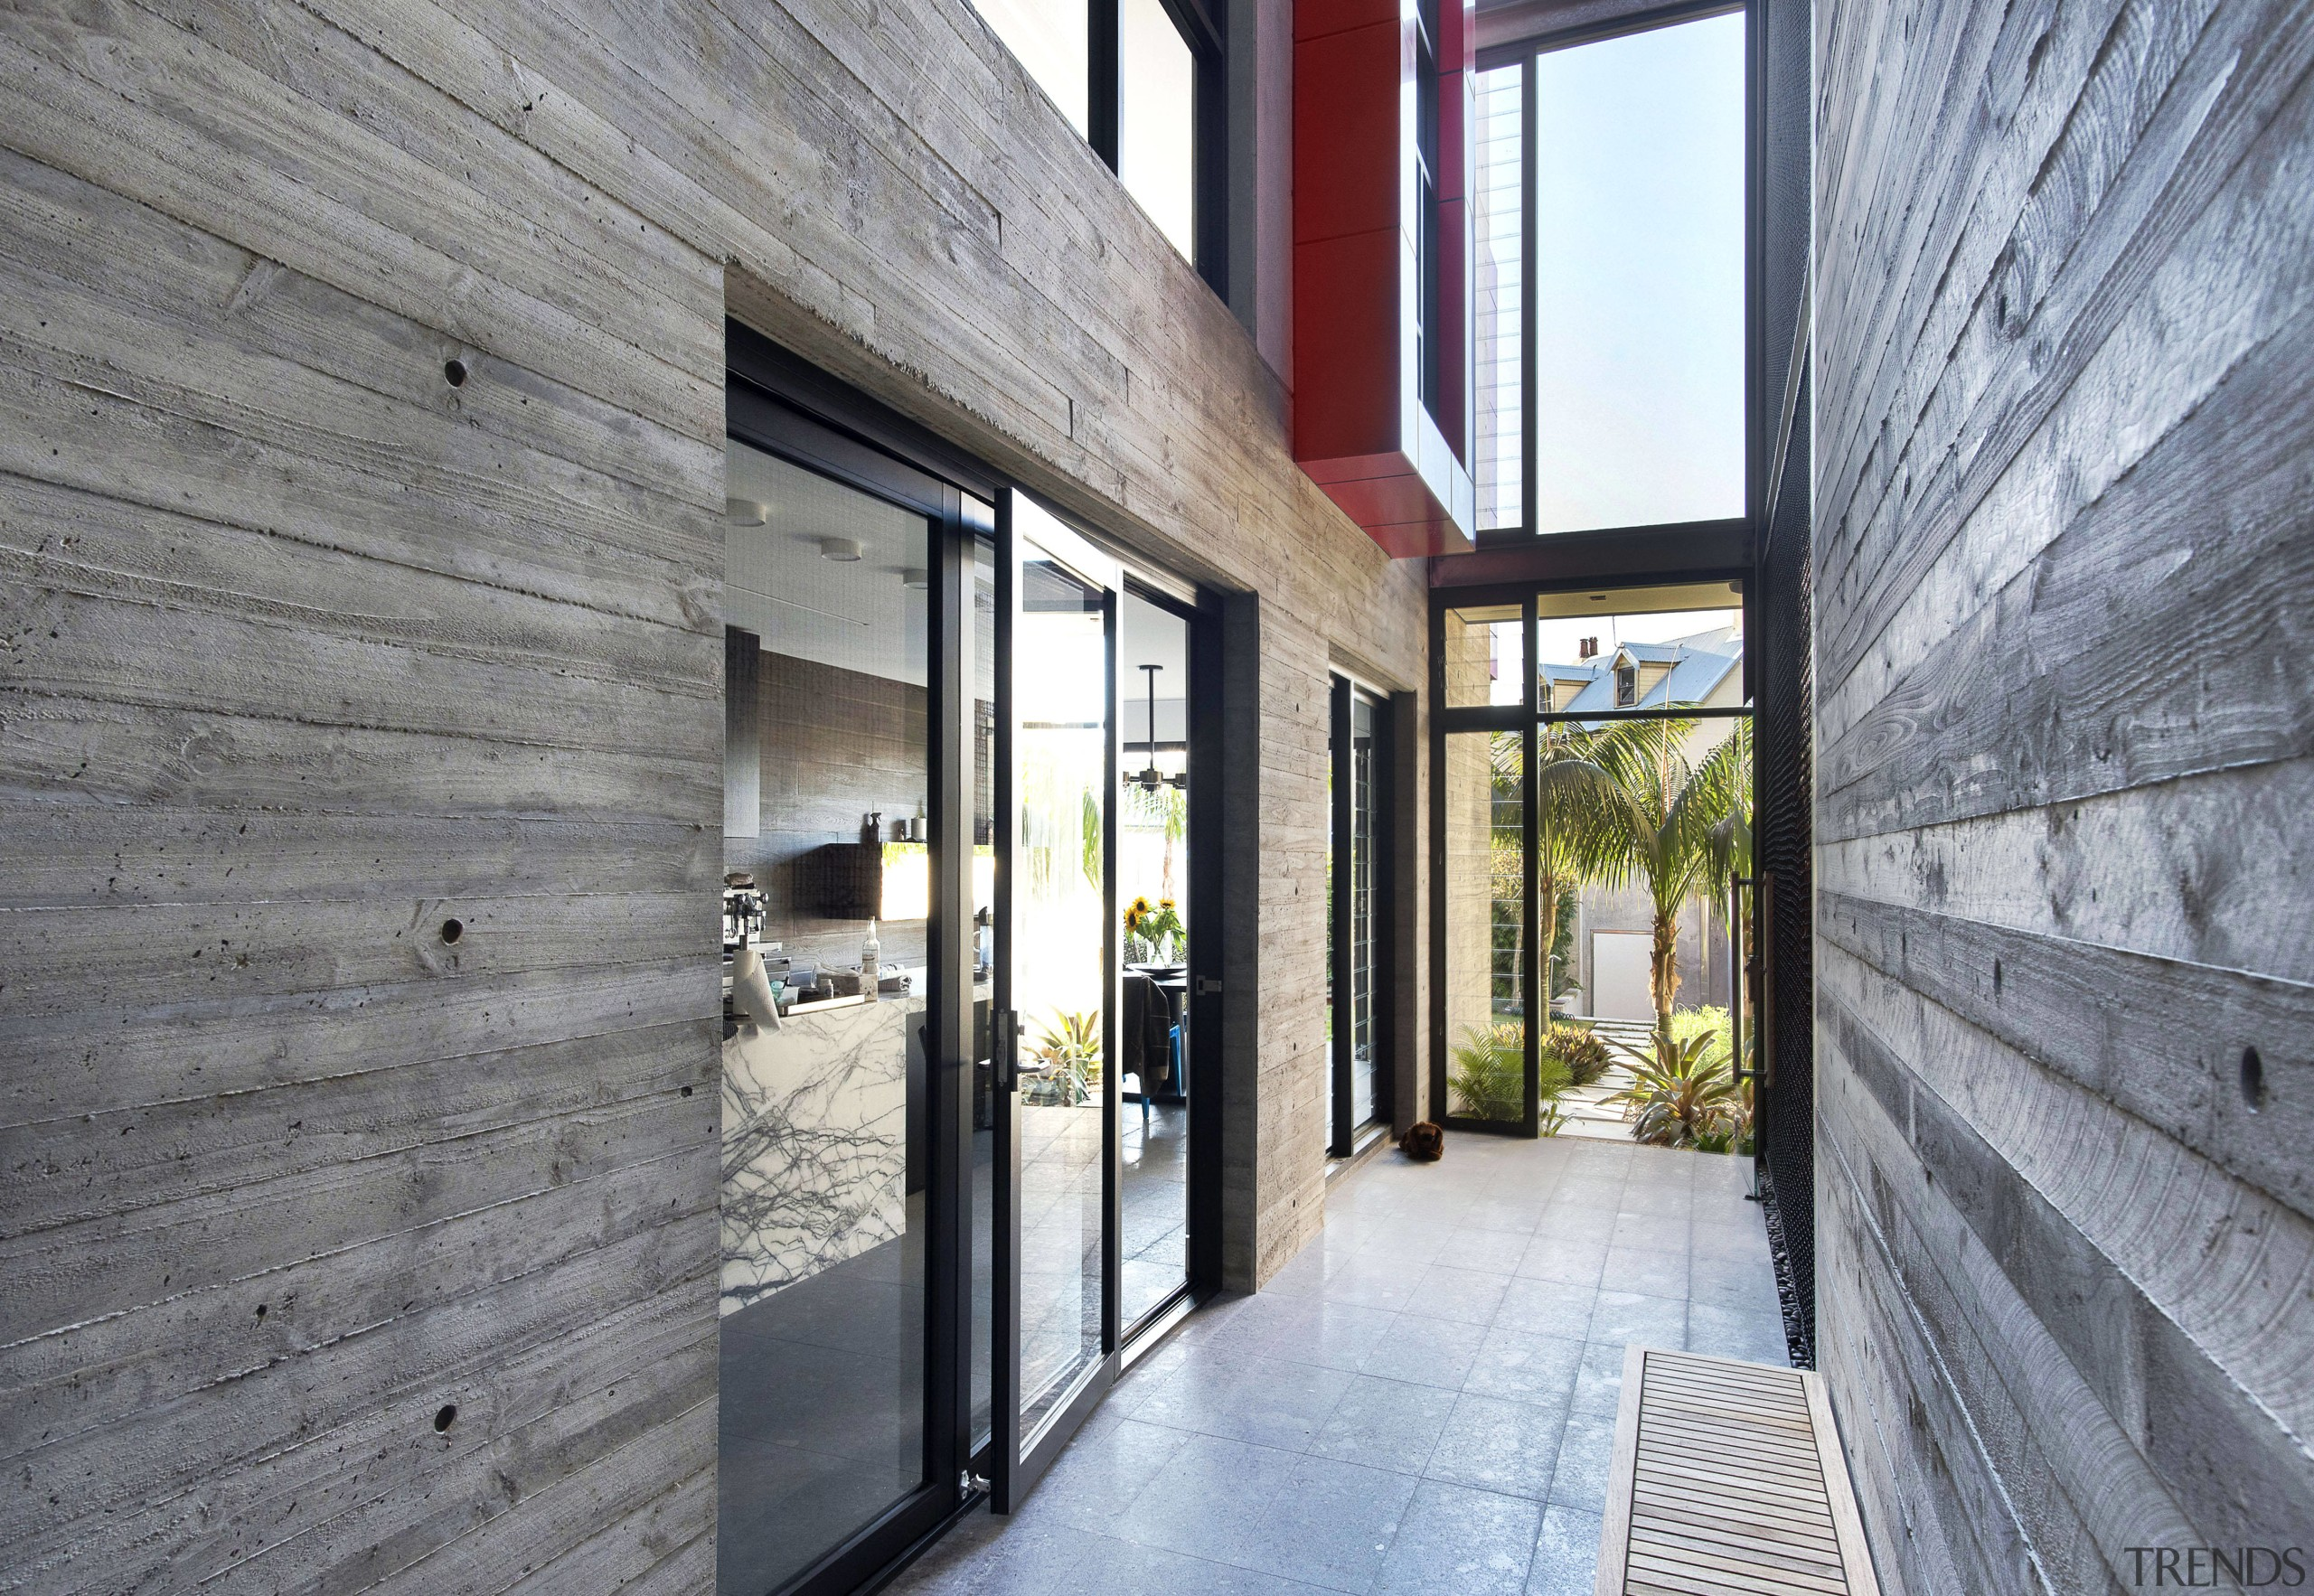 On this renovation and extension project, board-formed concrete architecture, home, house, interior design, property, real estate, gray